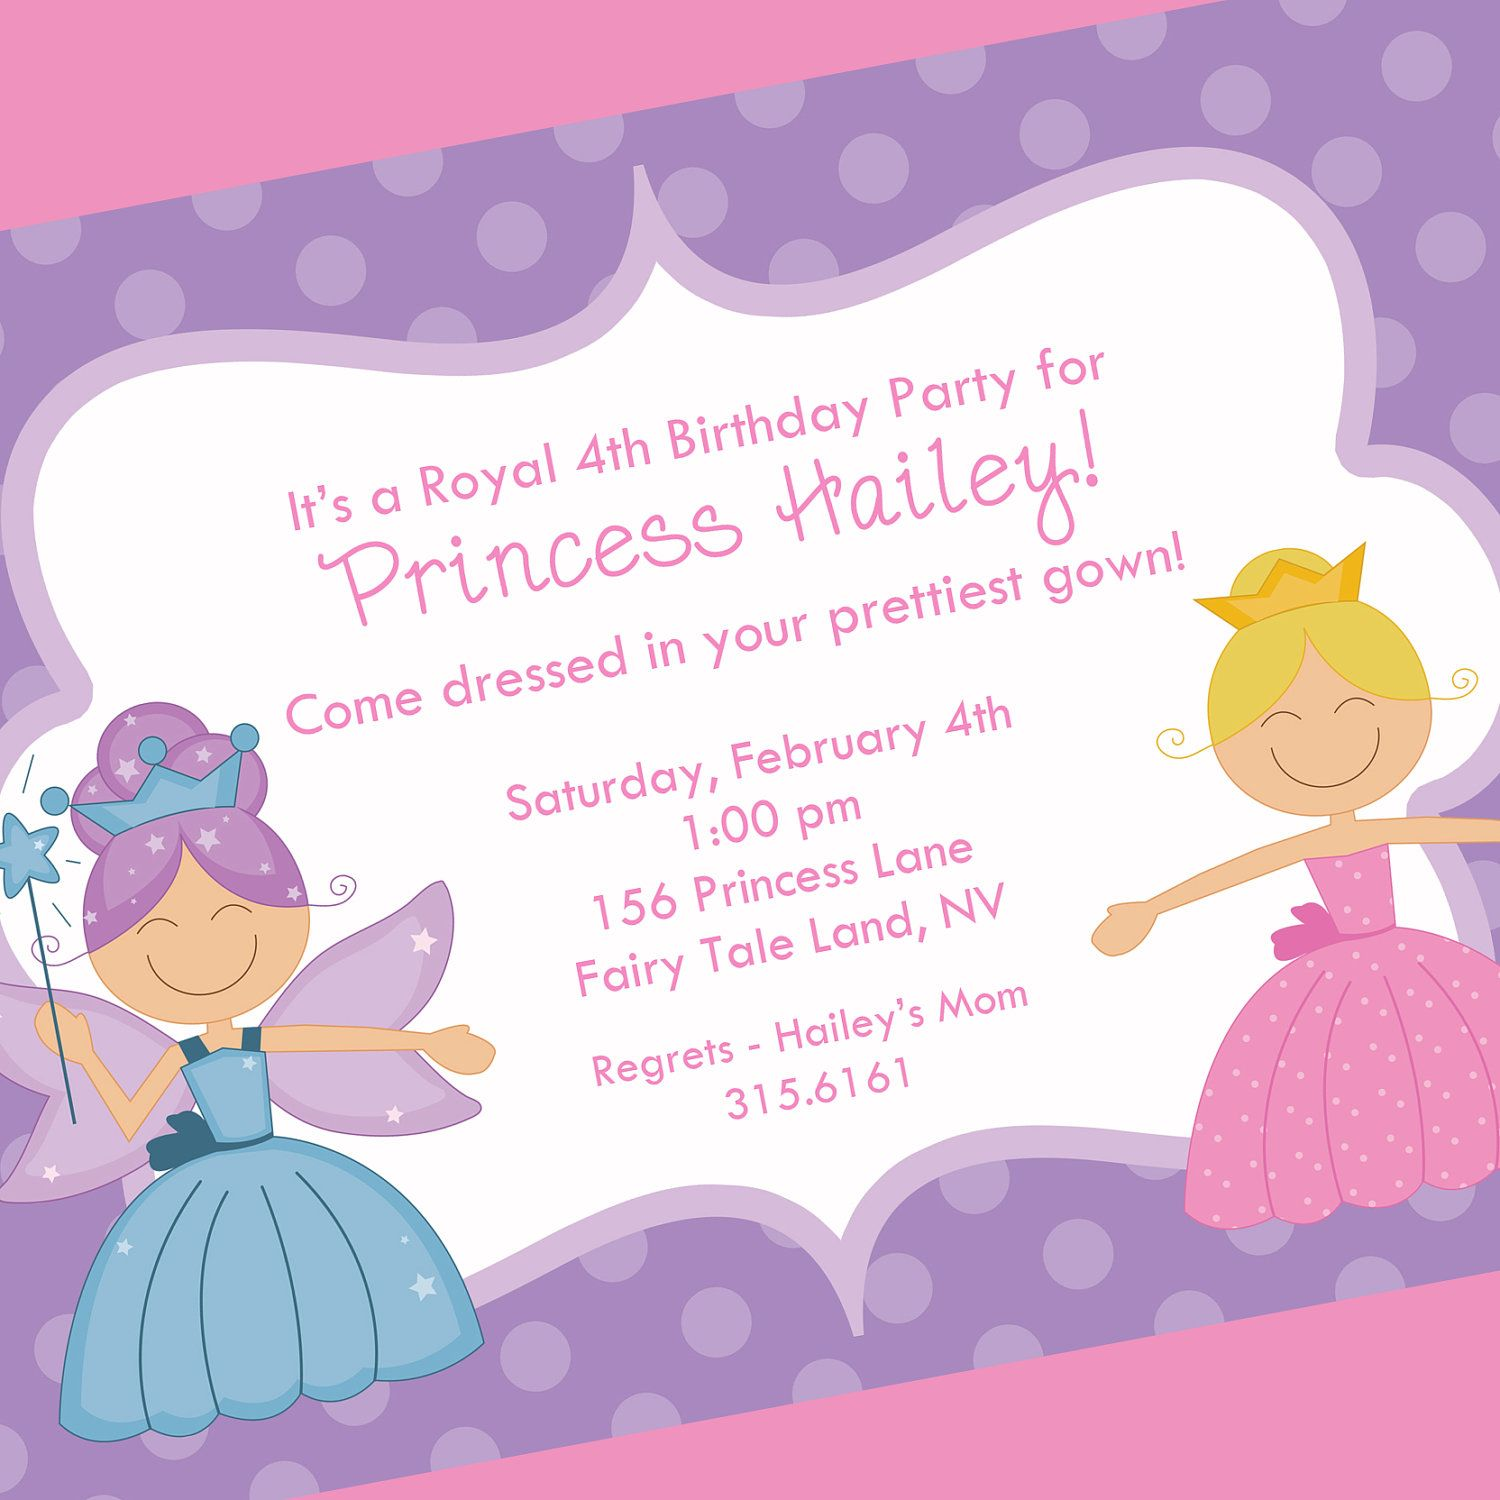 Princess birthday invitation printable invitation design princess birthday invitation printable invitation design custom wording jpeg file stopboris